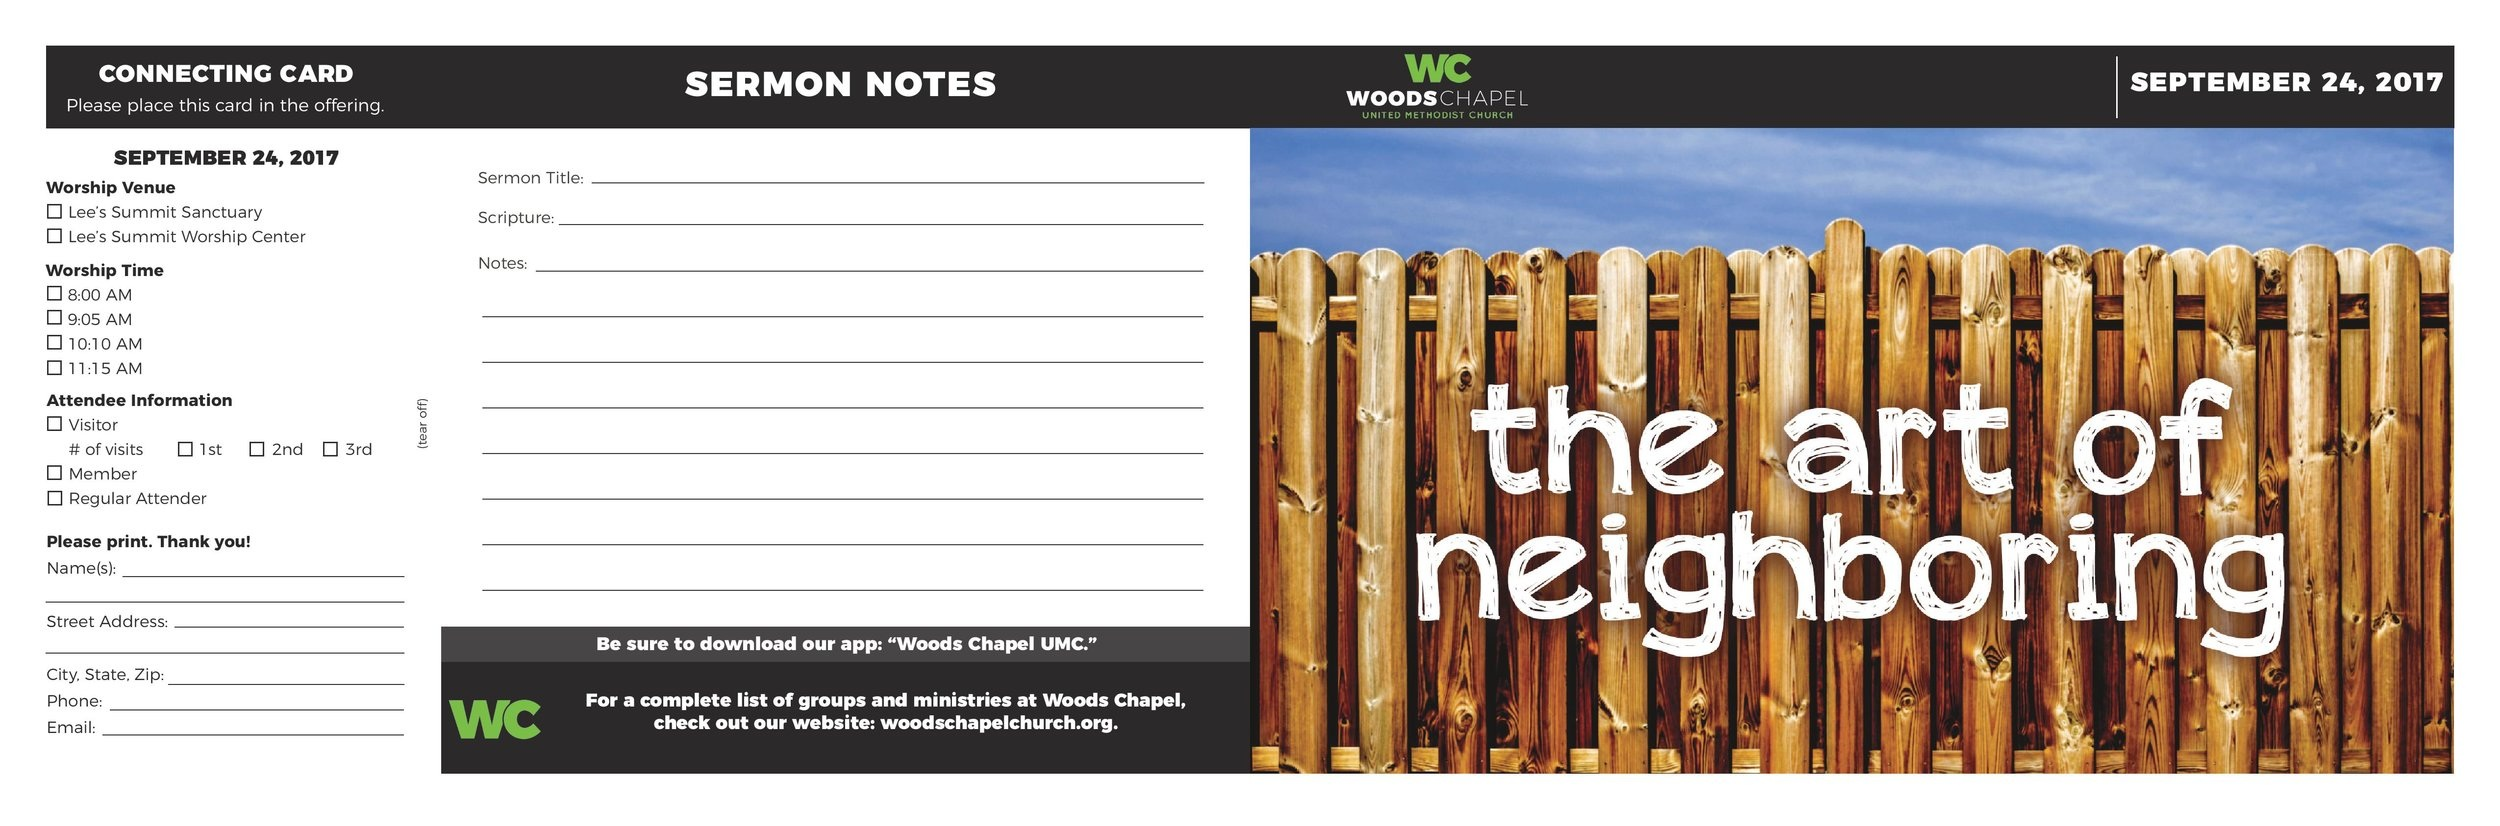 Front/back page of a bulletin for Woods Chapel Church.